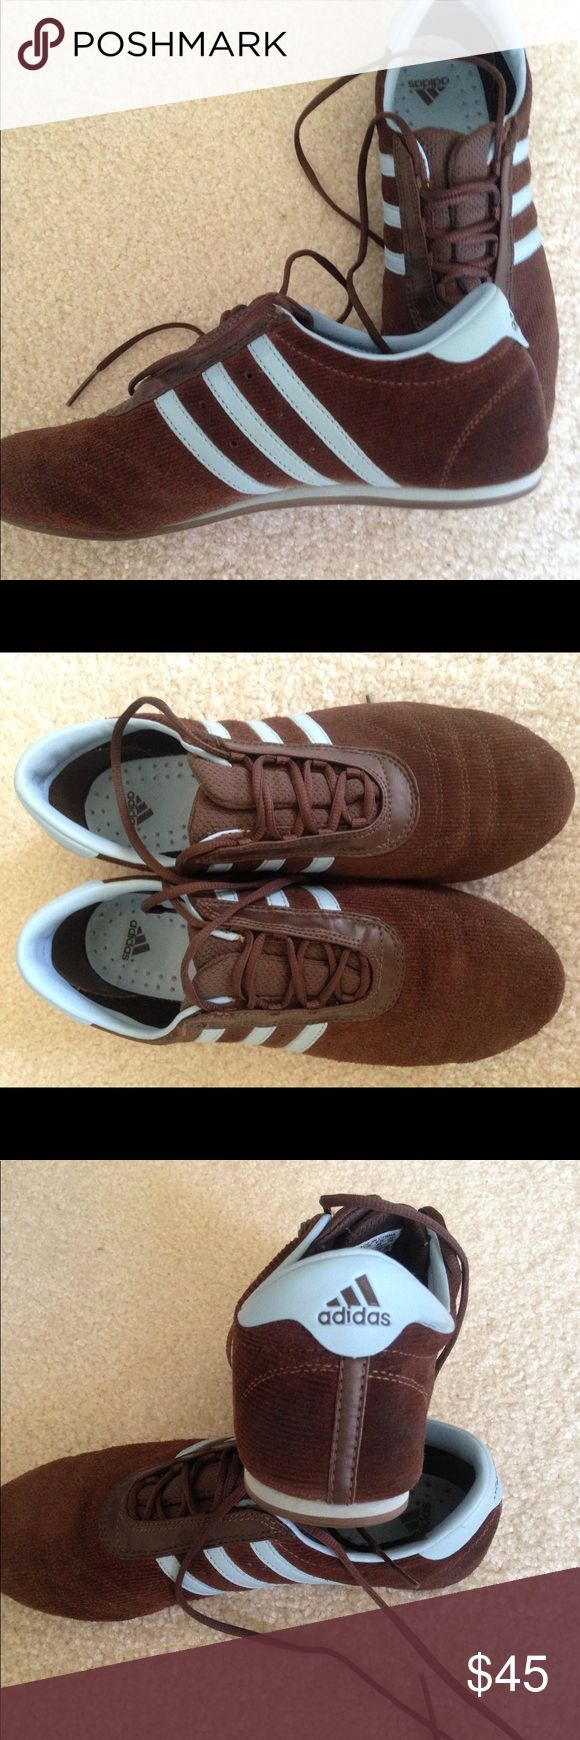 Vintage Addidas sneakers Vintage Adidas suede and leather sneakers EUC..offers considered. Bundle and save more Shoes